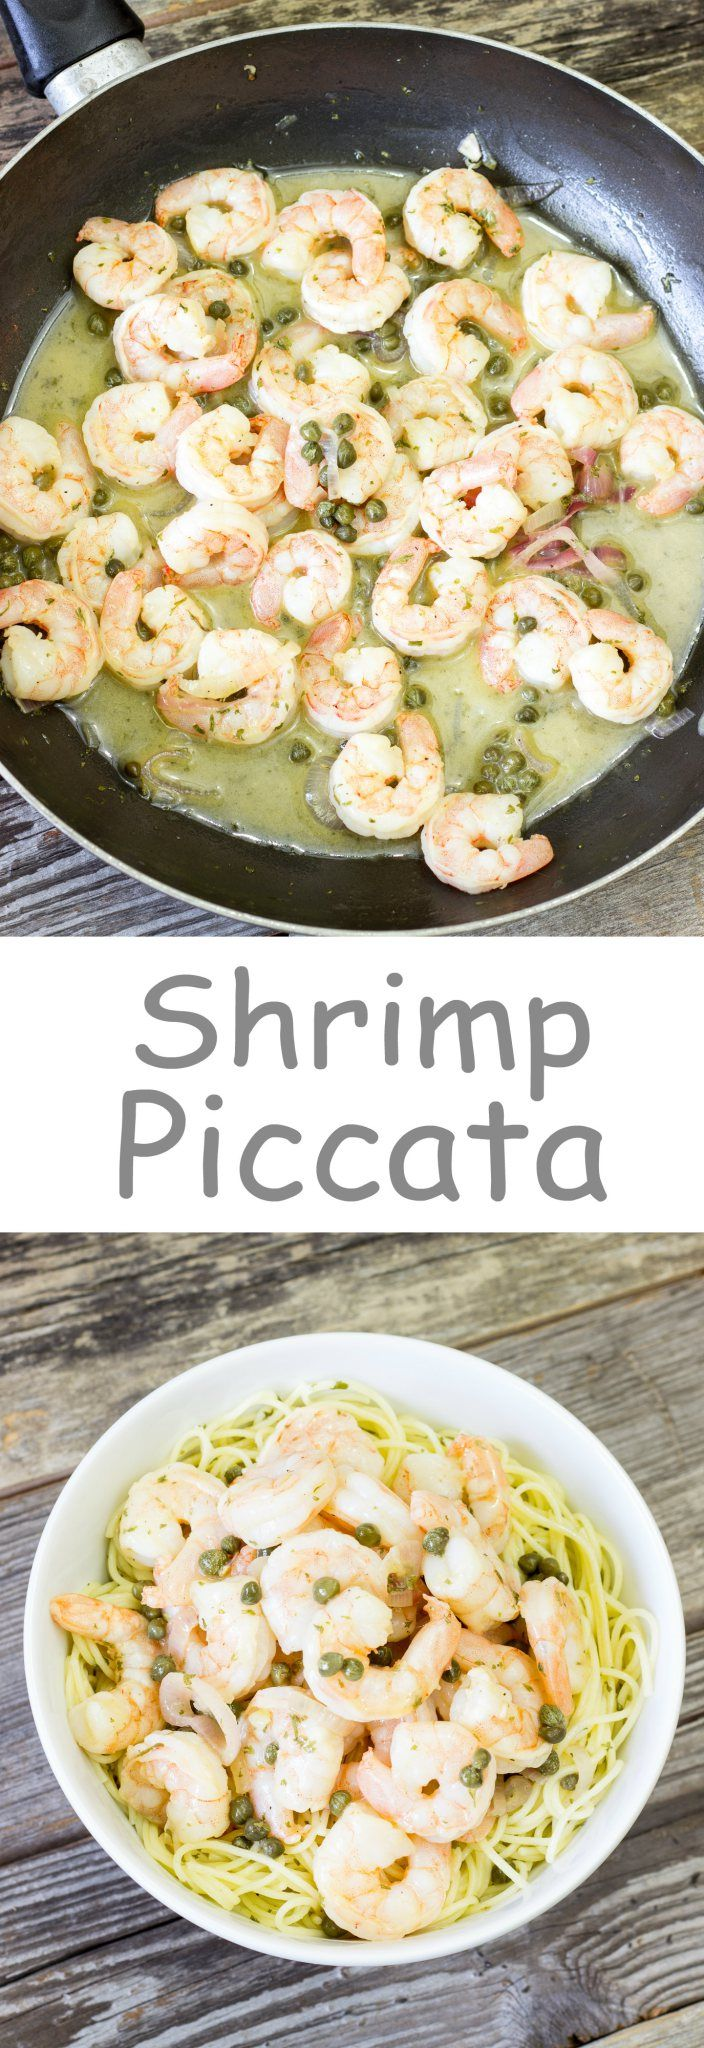 Shrimp Piccata - Bursting with flavor and ready in 15 minutes!